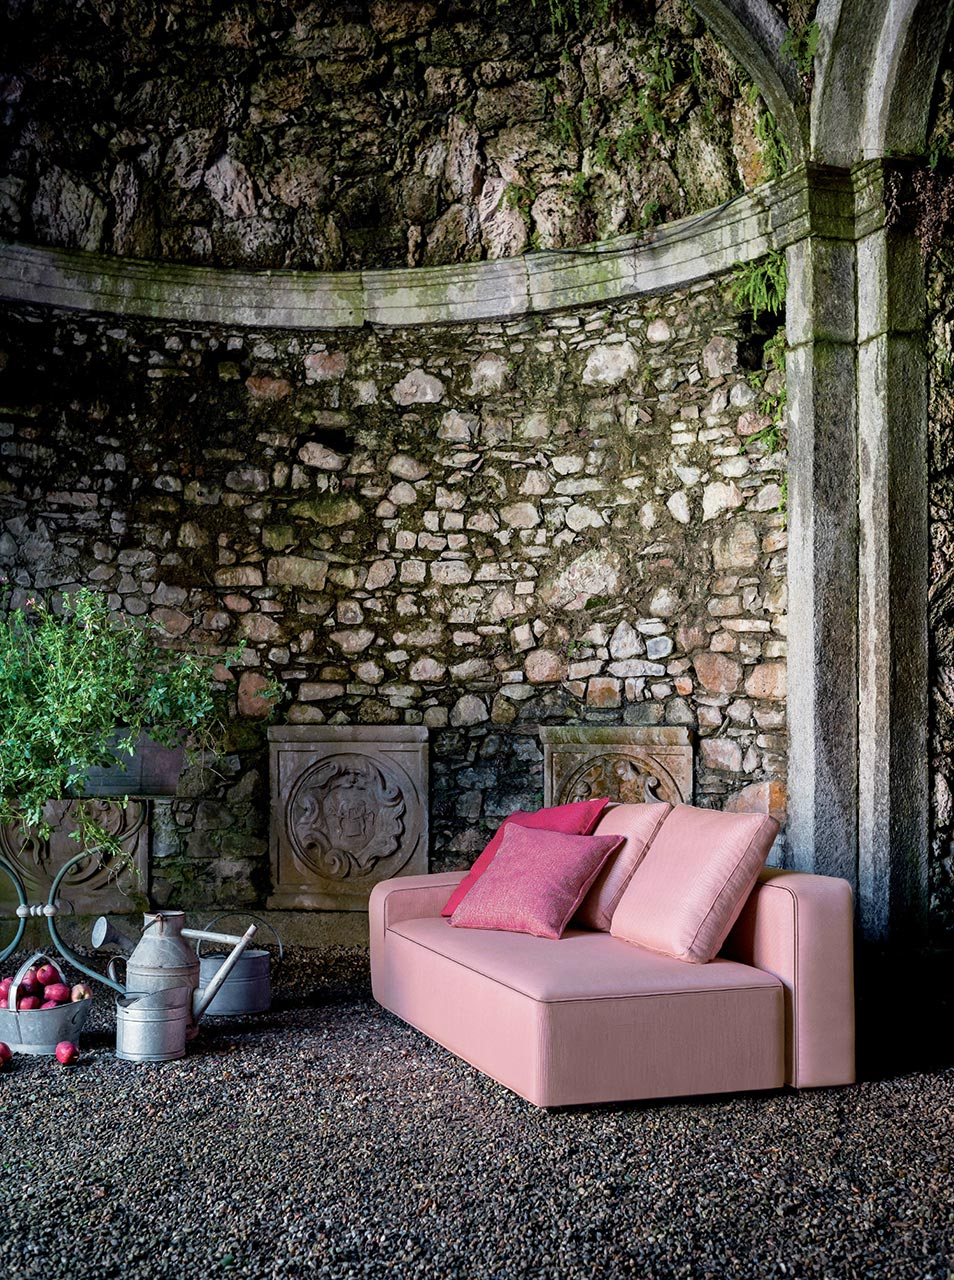 Dandy sofa in pink